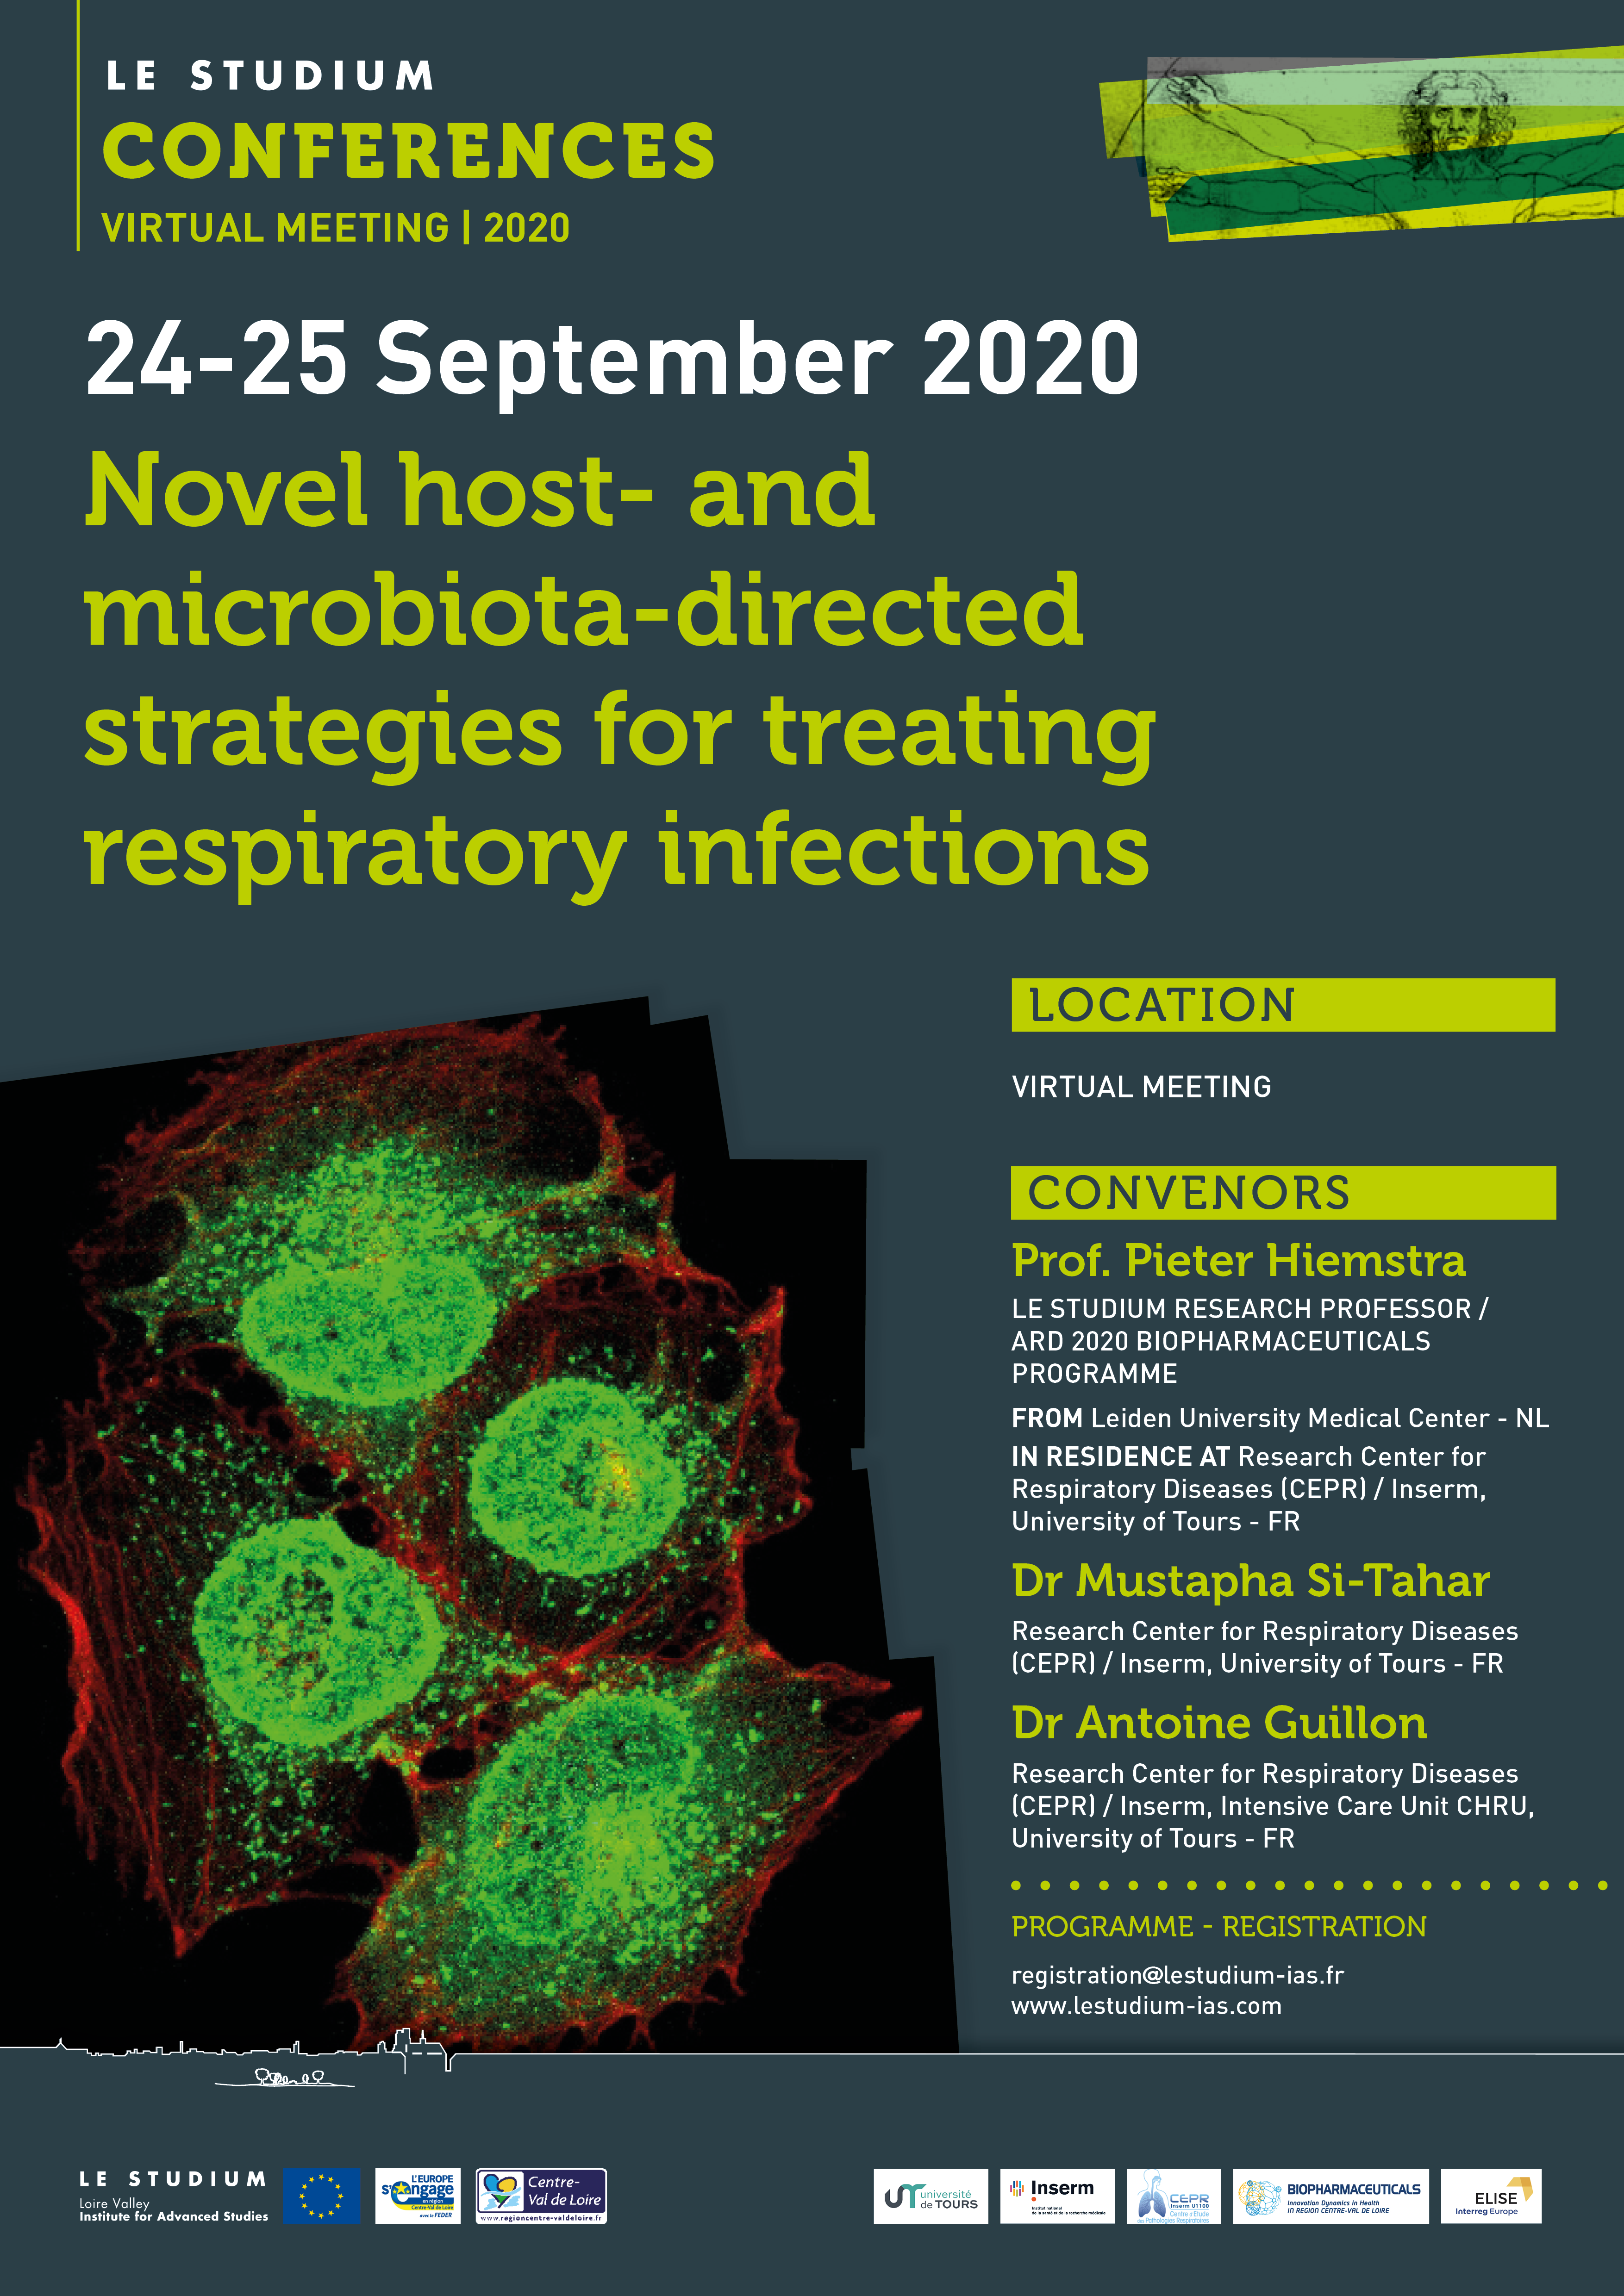 Novel host- and microbiota-directed strategies for treating respiratory infections